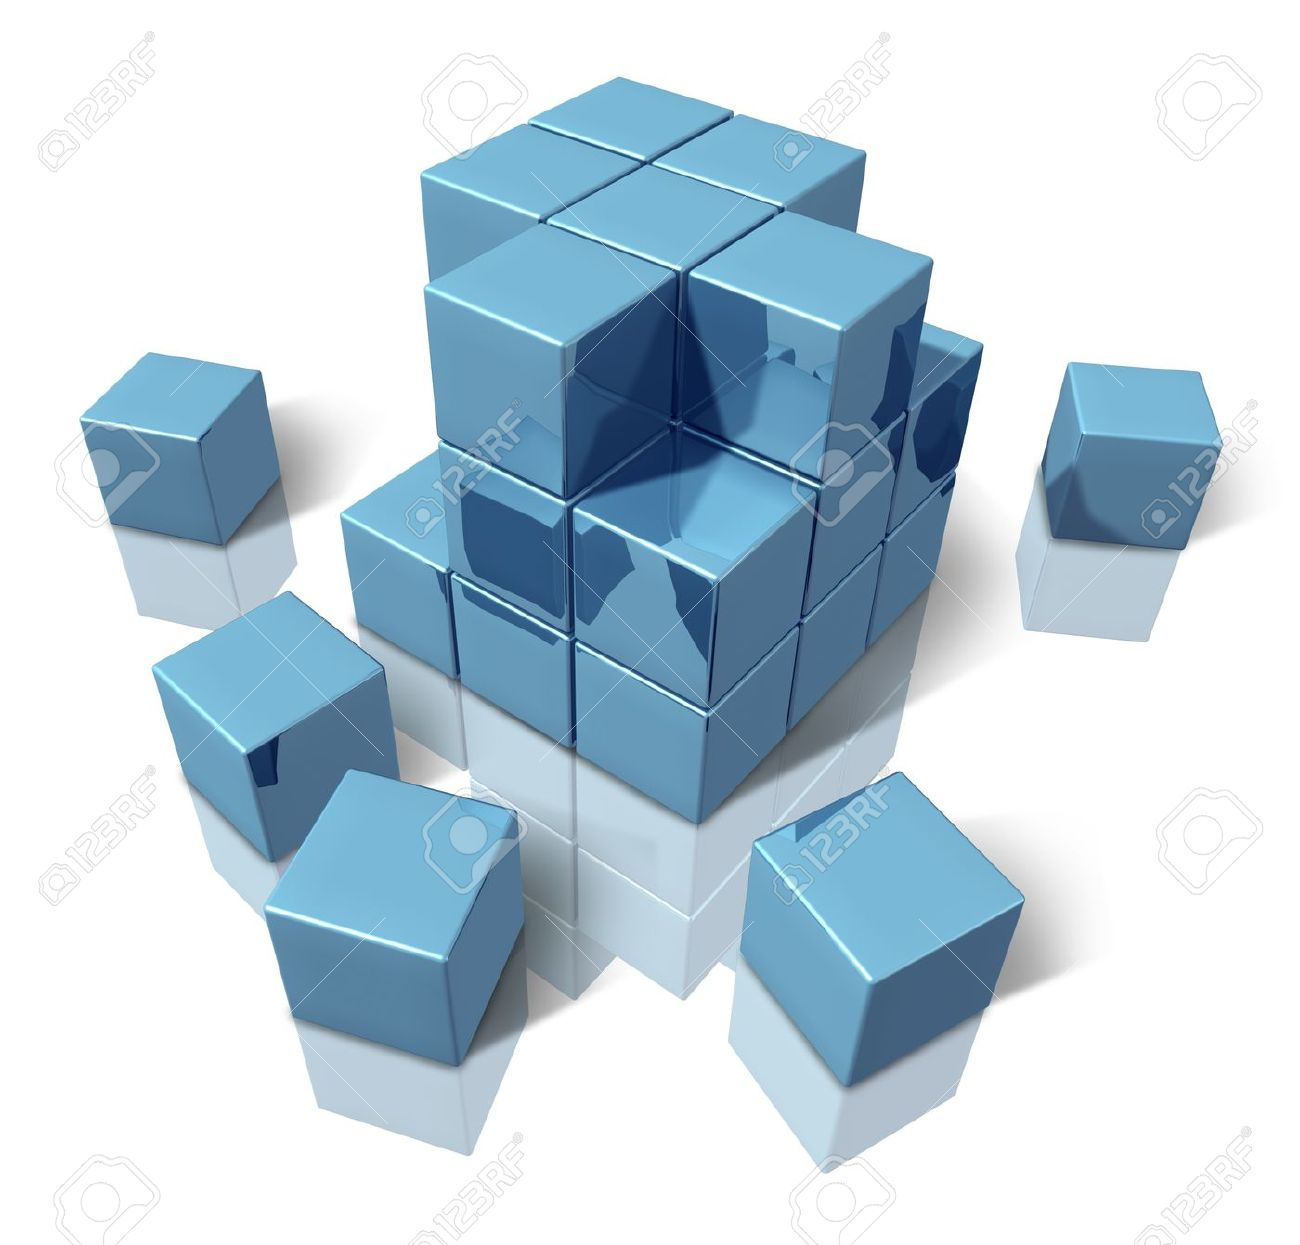 Animated building blocks clipart clipart library download Construction Blocks Stock Photo, Picture And Royalty Free Image ... clipart library download